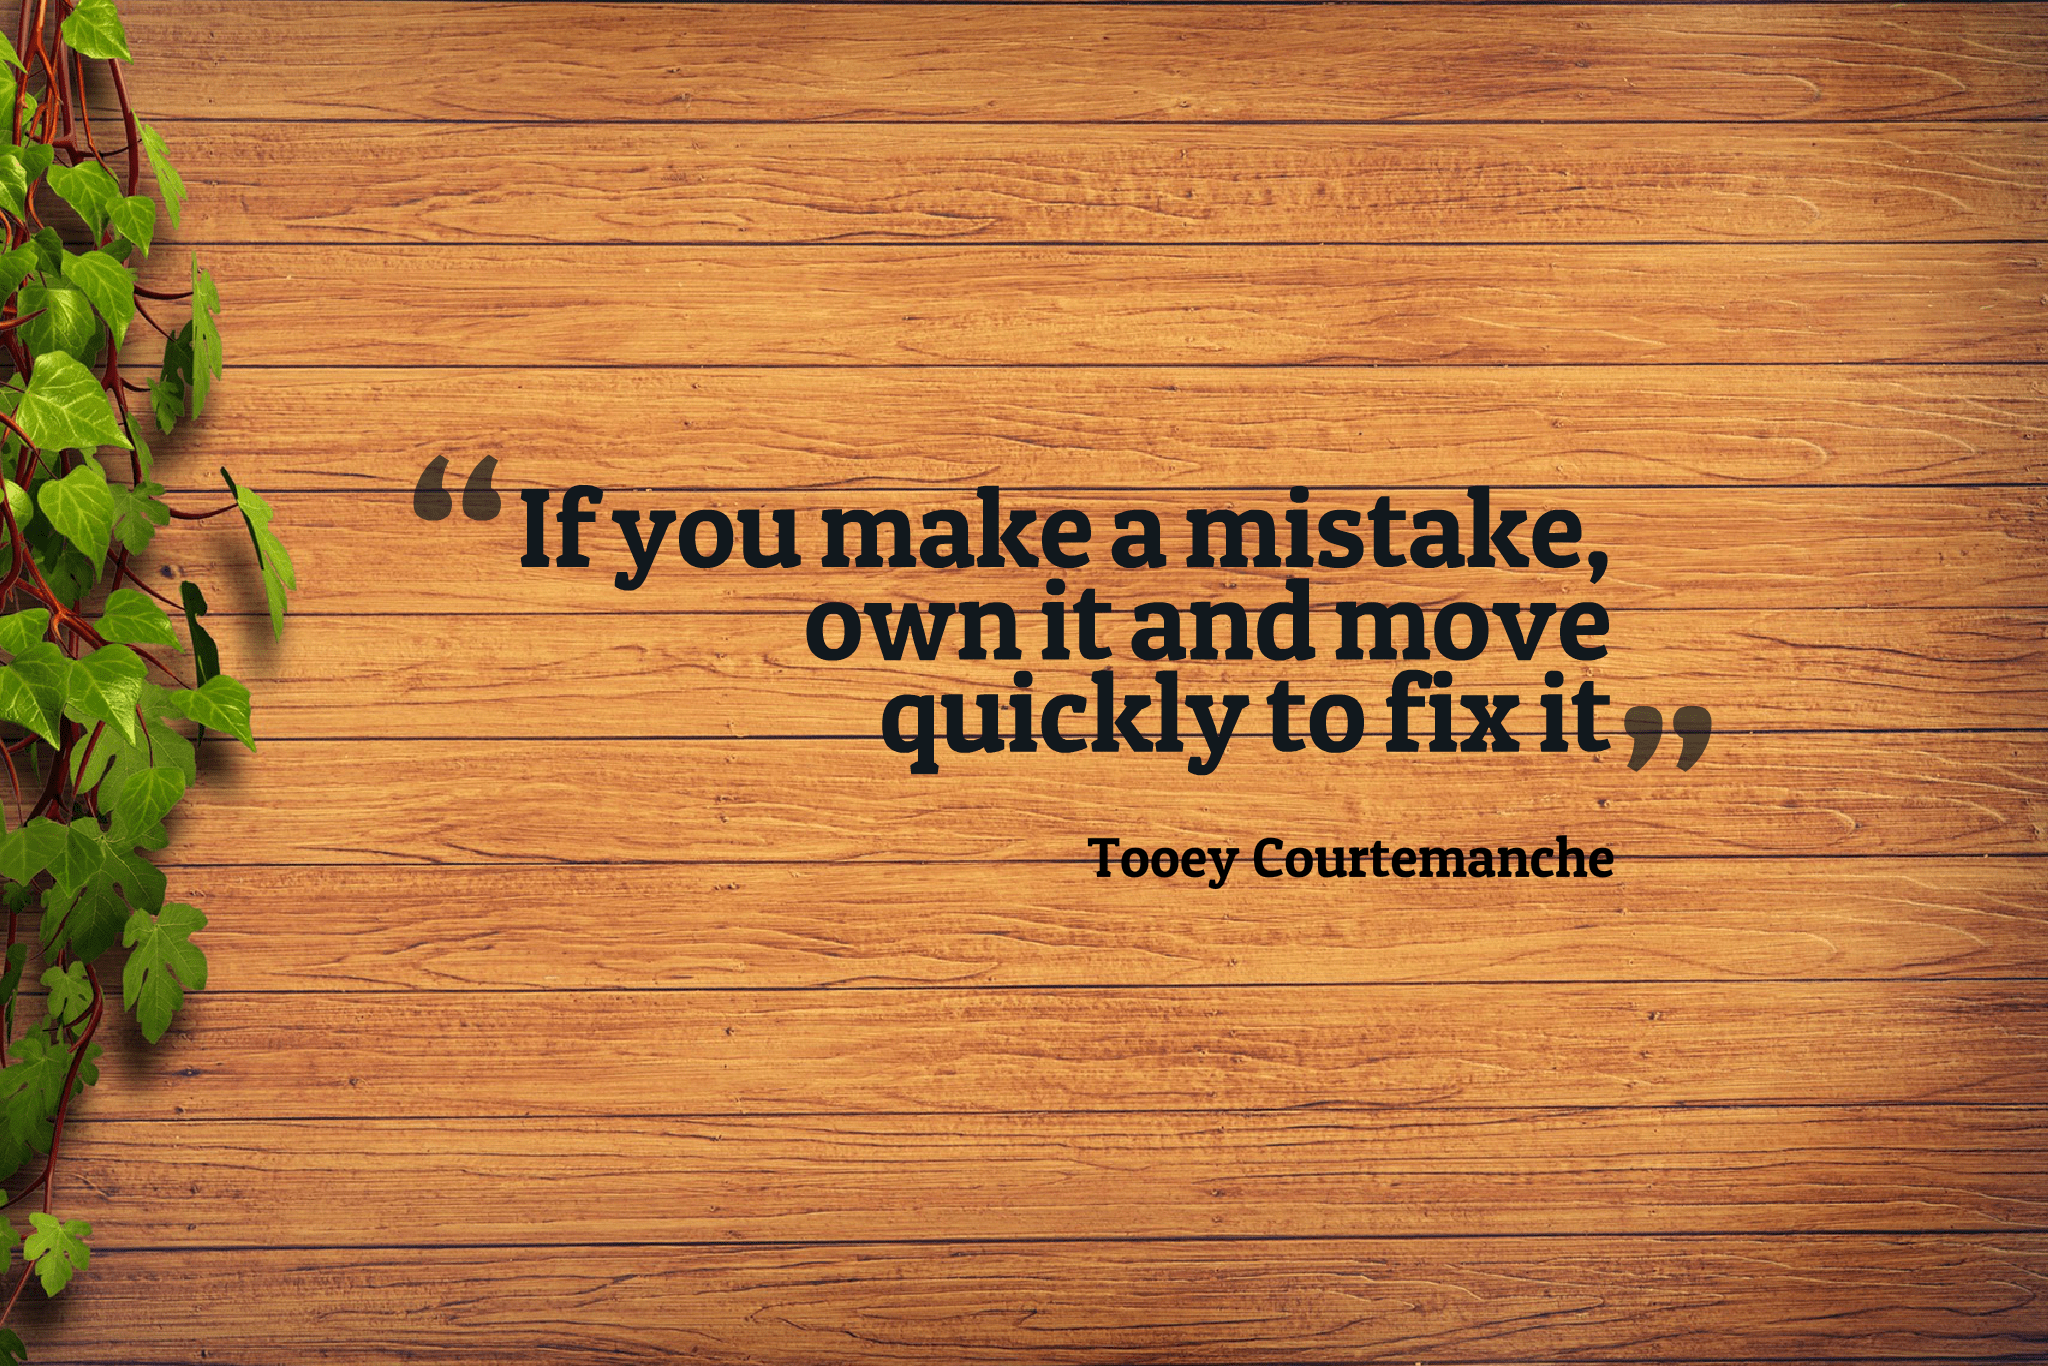 Quotes image of If you make a mistake, own it and move quickly to fix it